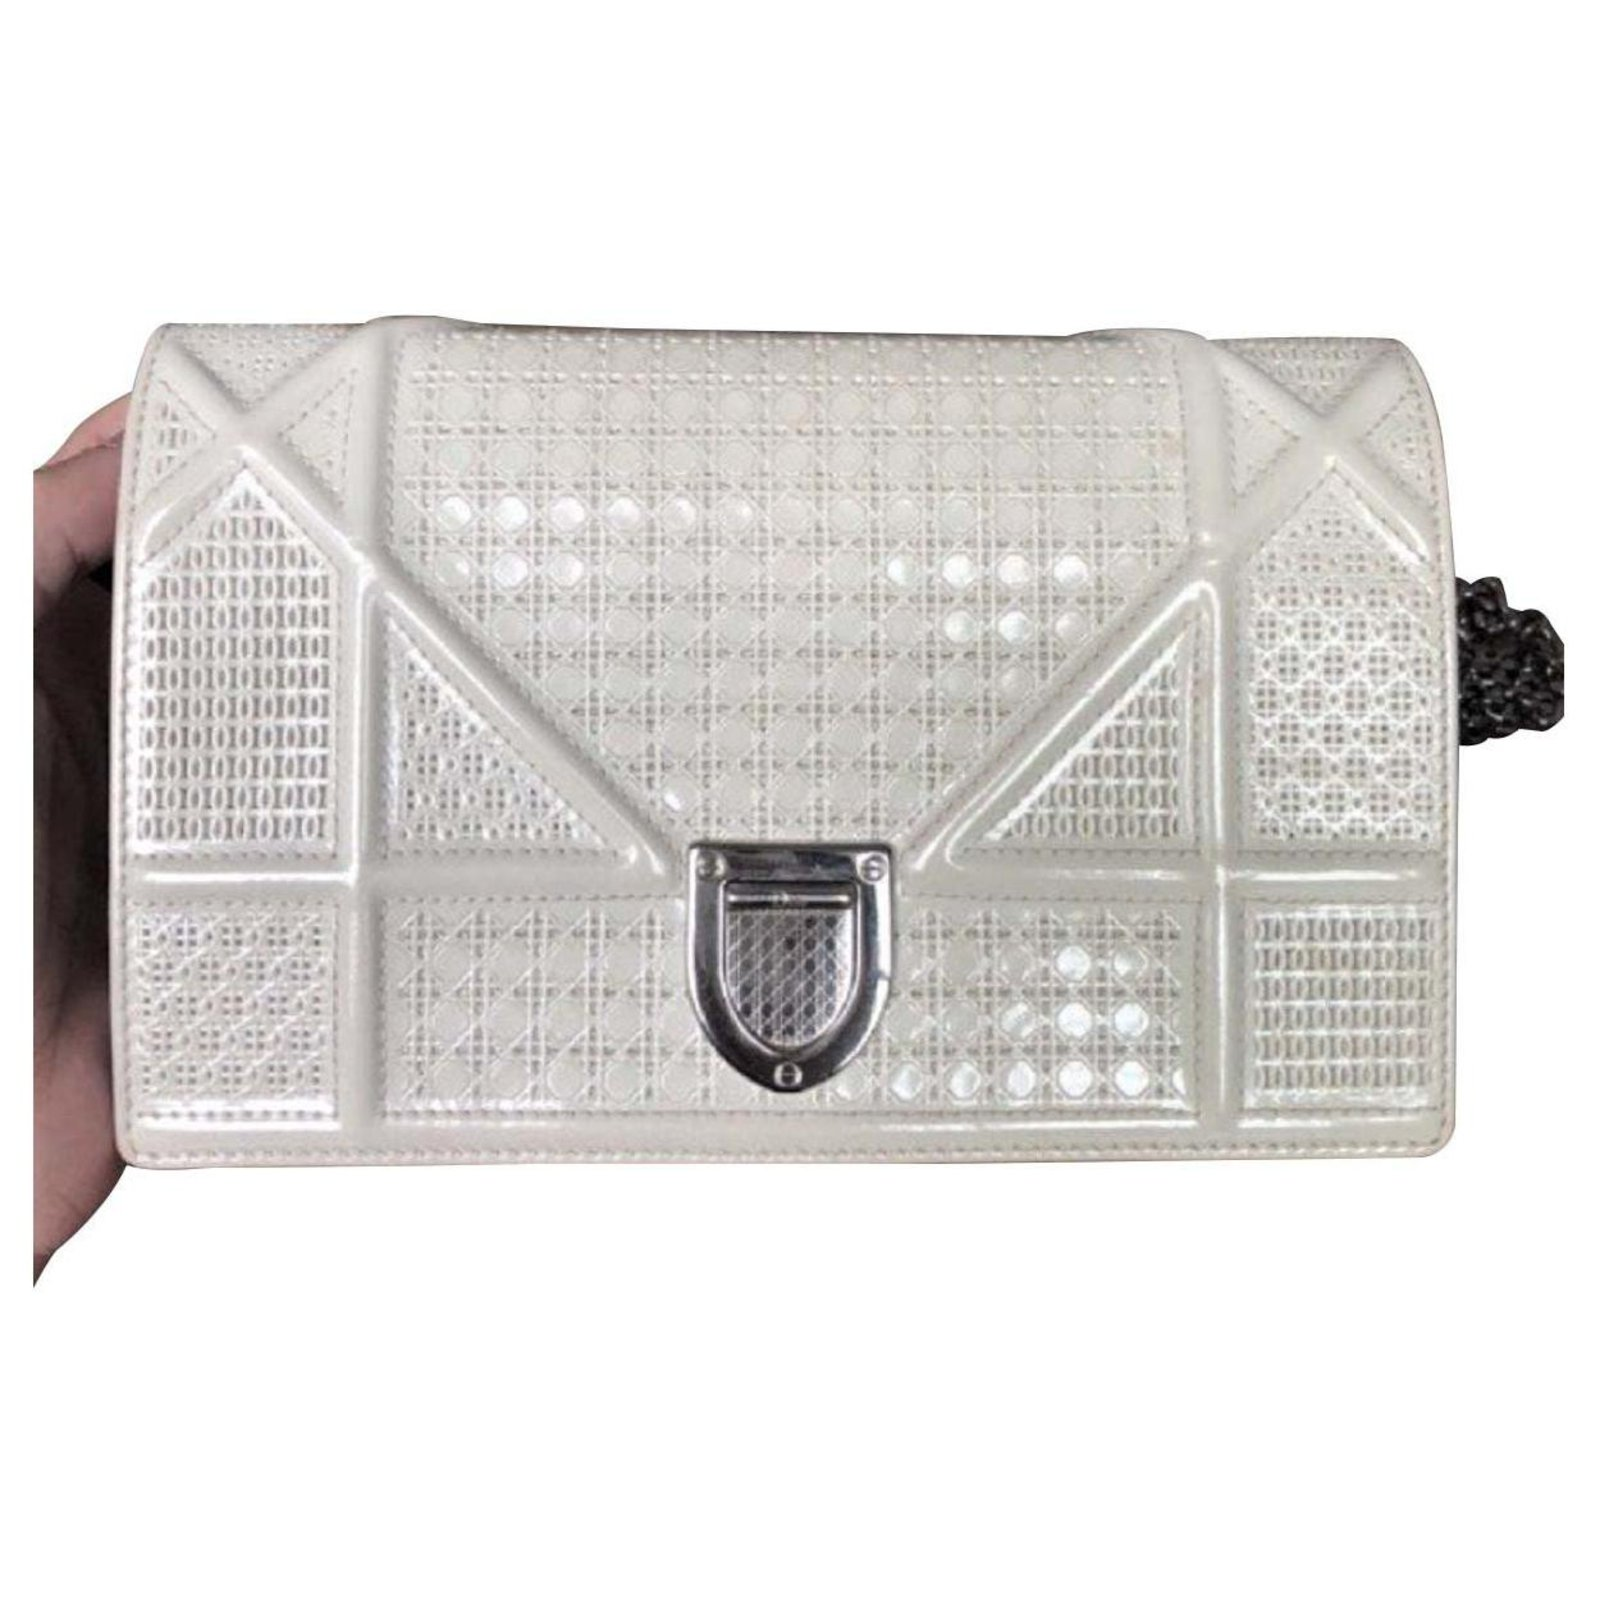 04be8dc8a0ad Dior Diorama bag in white patent leather Handbags Patent leather White  ref.114907